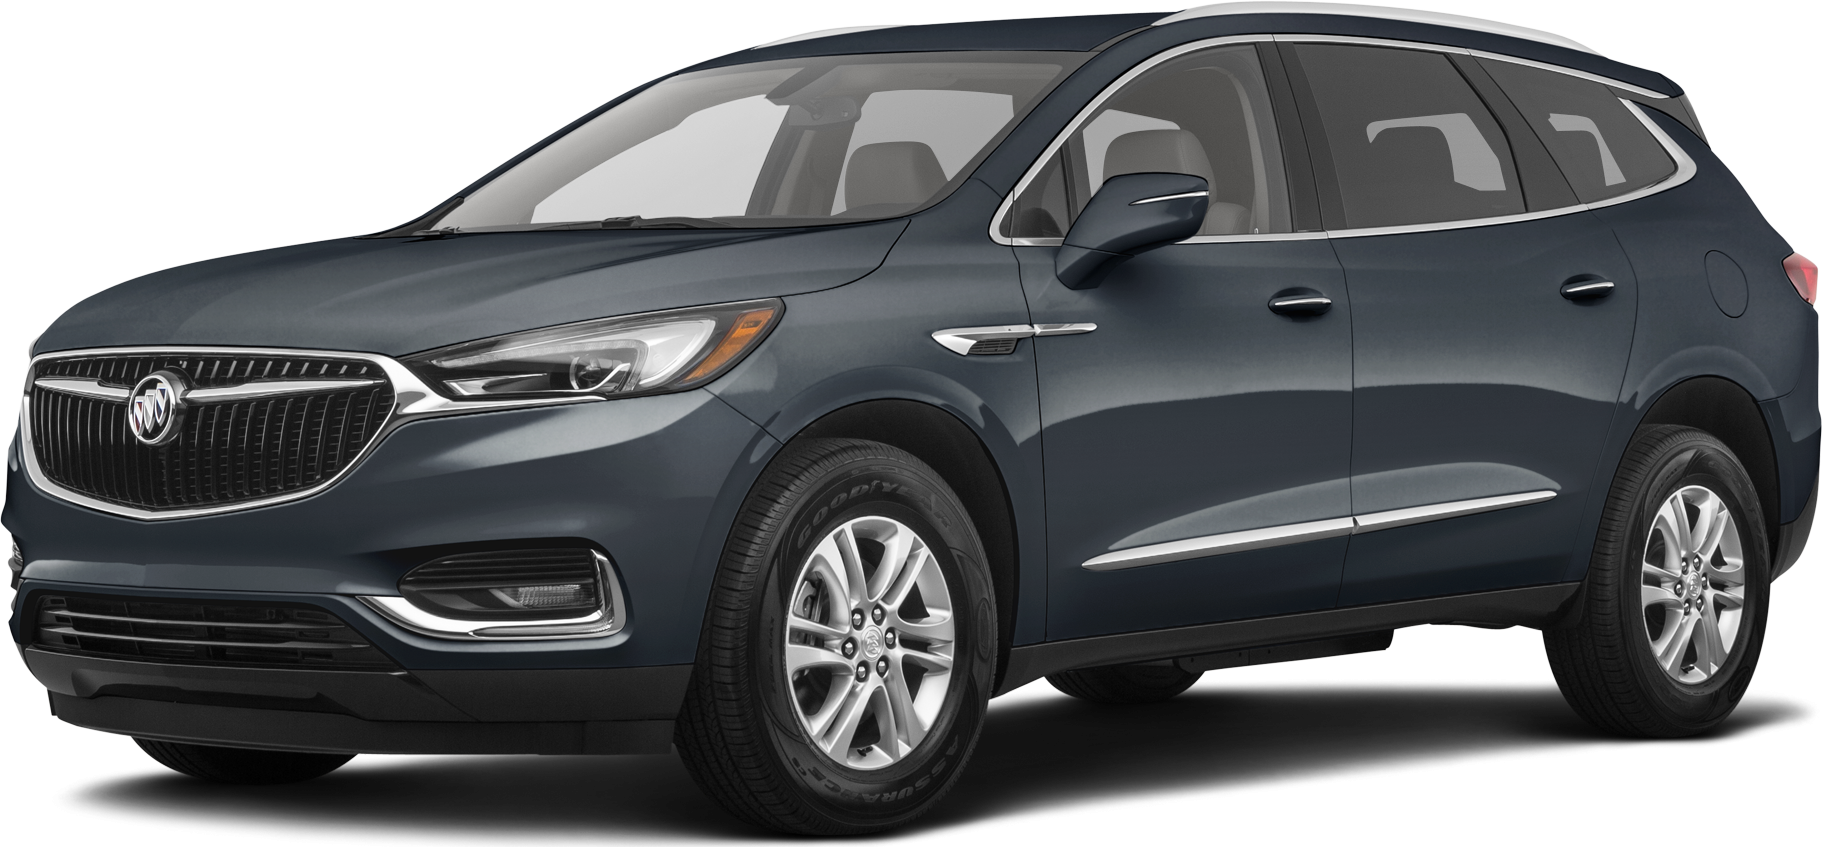 2019 Buick Enclave Prices, Reviews & Pictures | Kelley Blue Book 2021 Buick Enclave Interior Pictures, Invoice Price, Lease